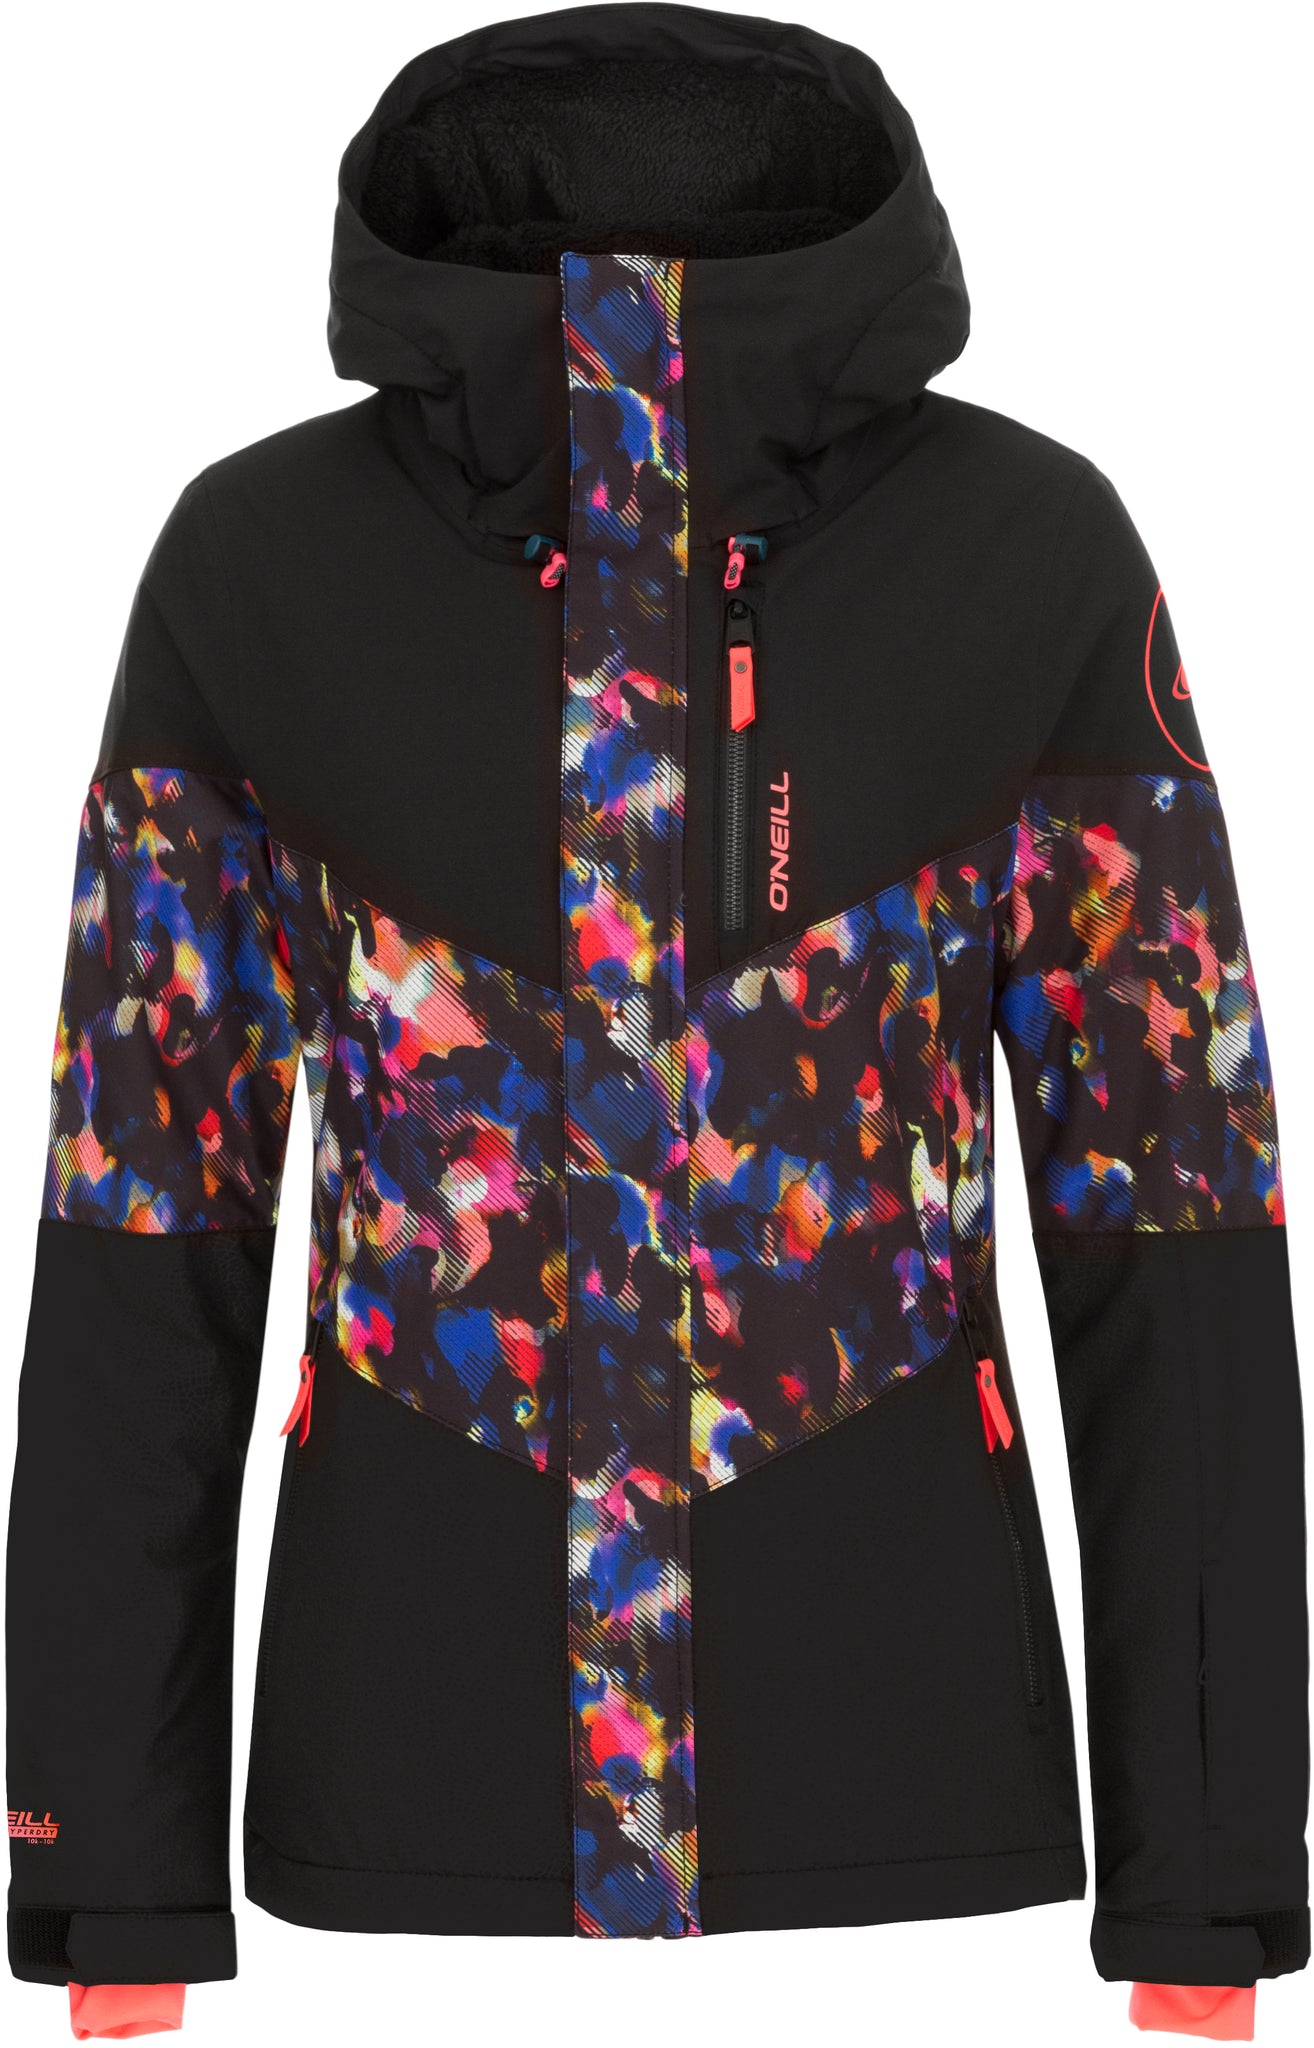 PW MB CORAL JACKET